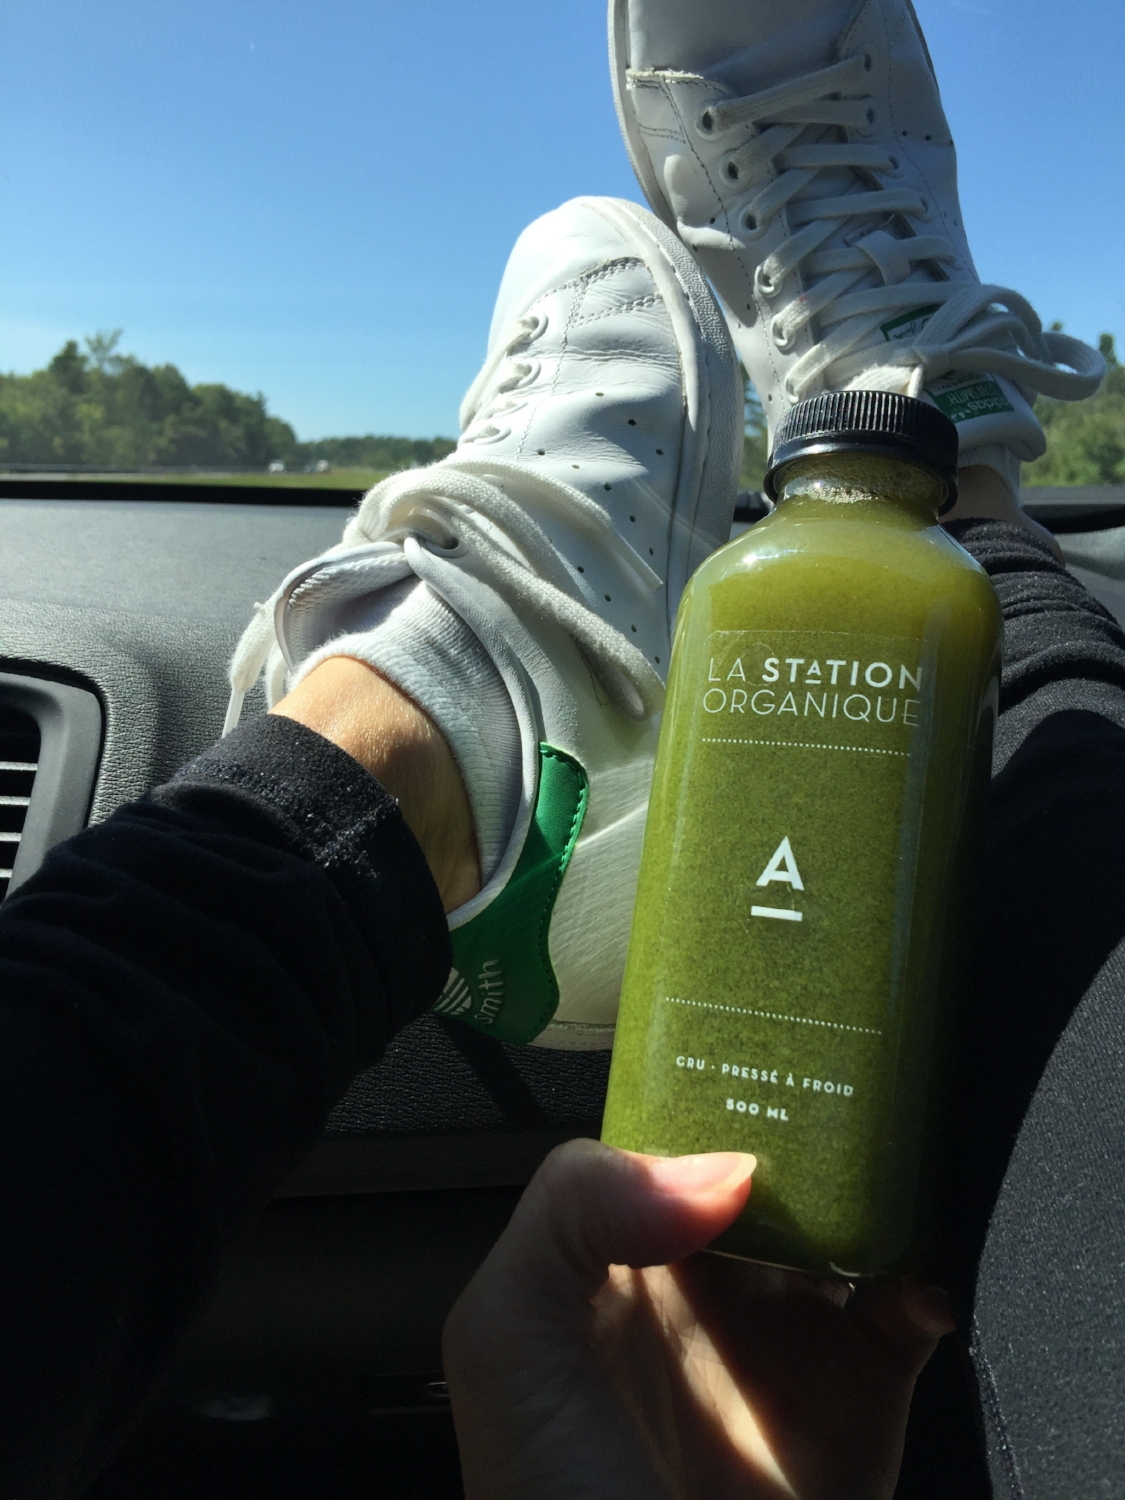 Fresh to-go! - Road-trip-ready as each bottle is securely sealed and perfect for taking on your next trip. No more gross, greasy roadside drive through fast food!